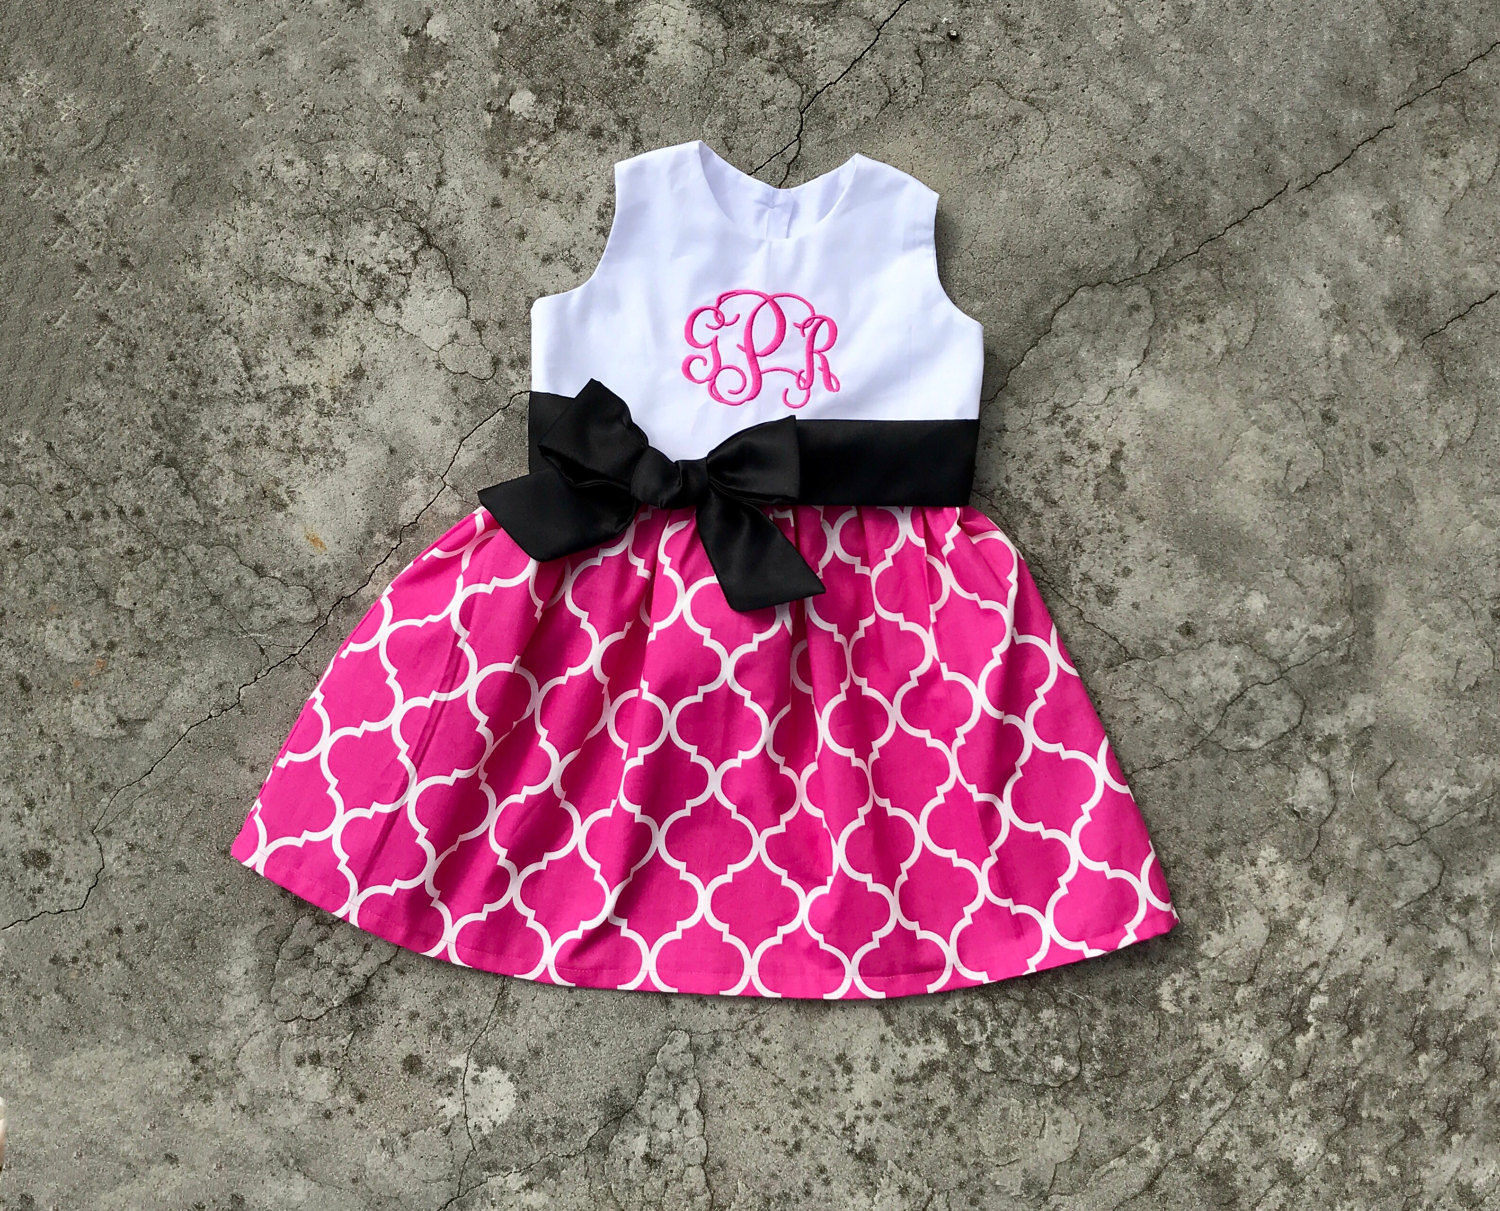 Easter dresses for baby girl, pink and black dress, baby girl clothes,  infant outfit, toddler girl easter dress, babys 20st easter outfit